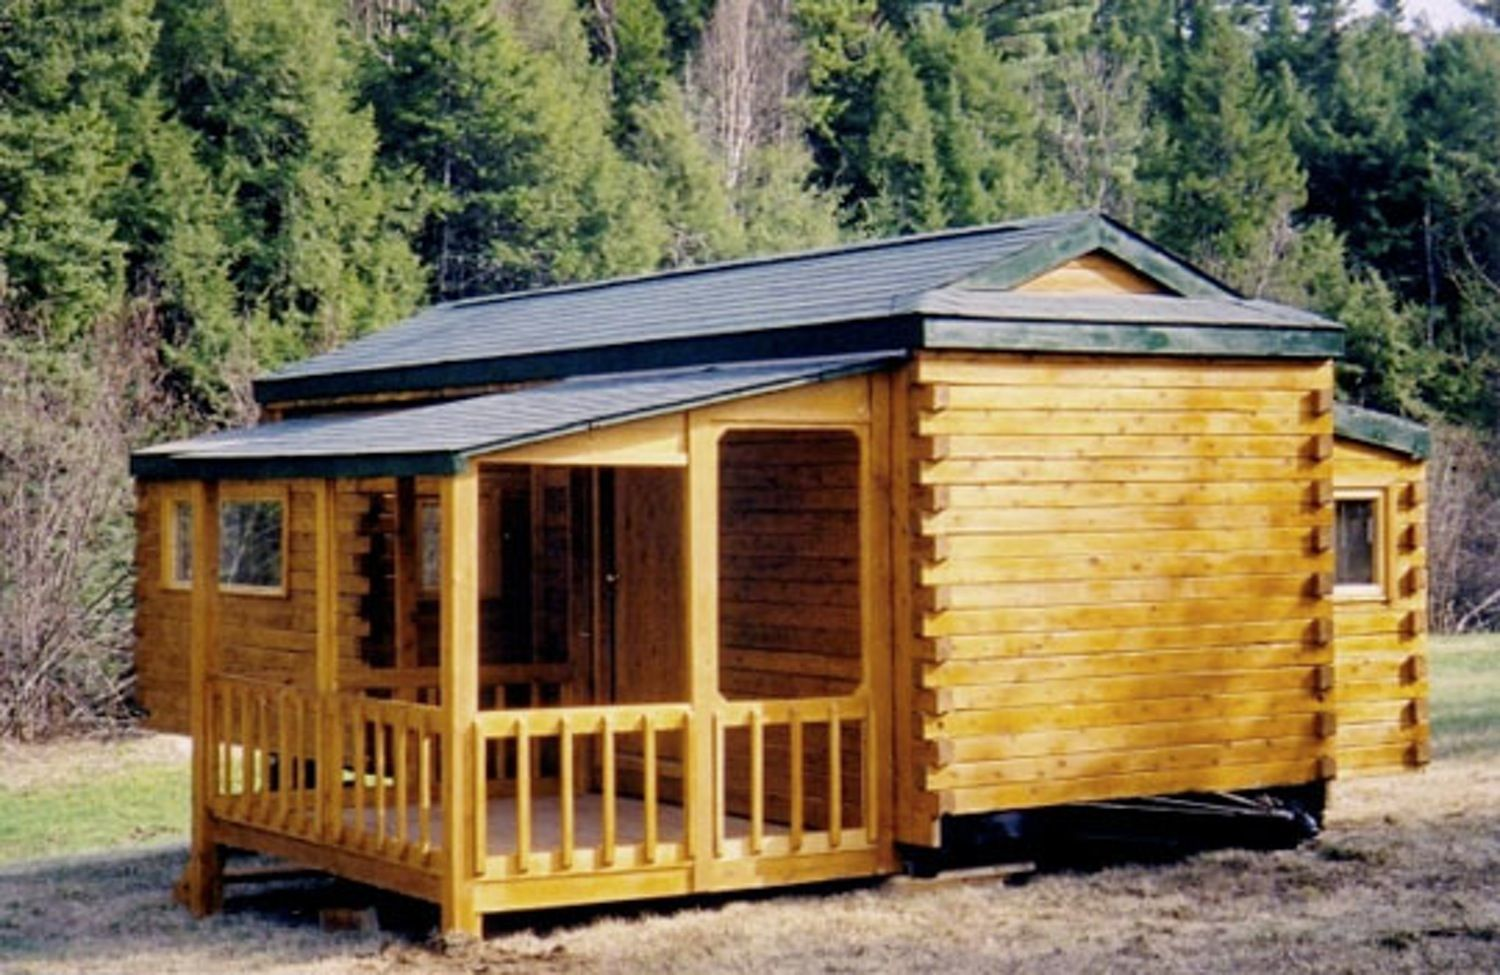 The portable cabin natural log rv natural cabin and logs for Rv log cabins